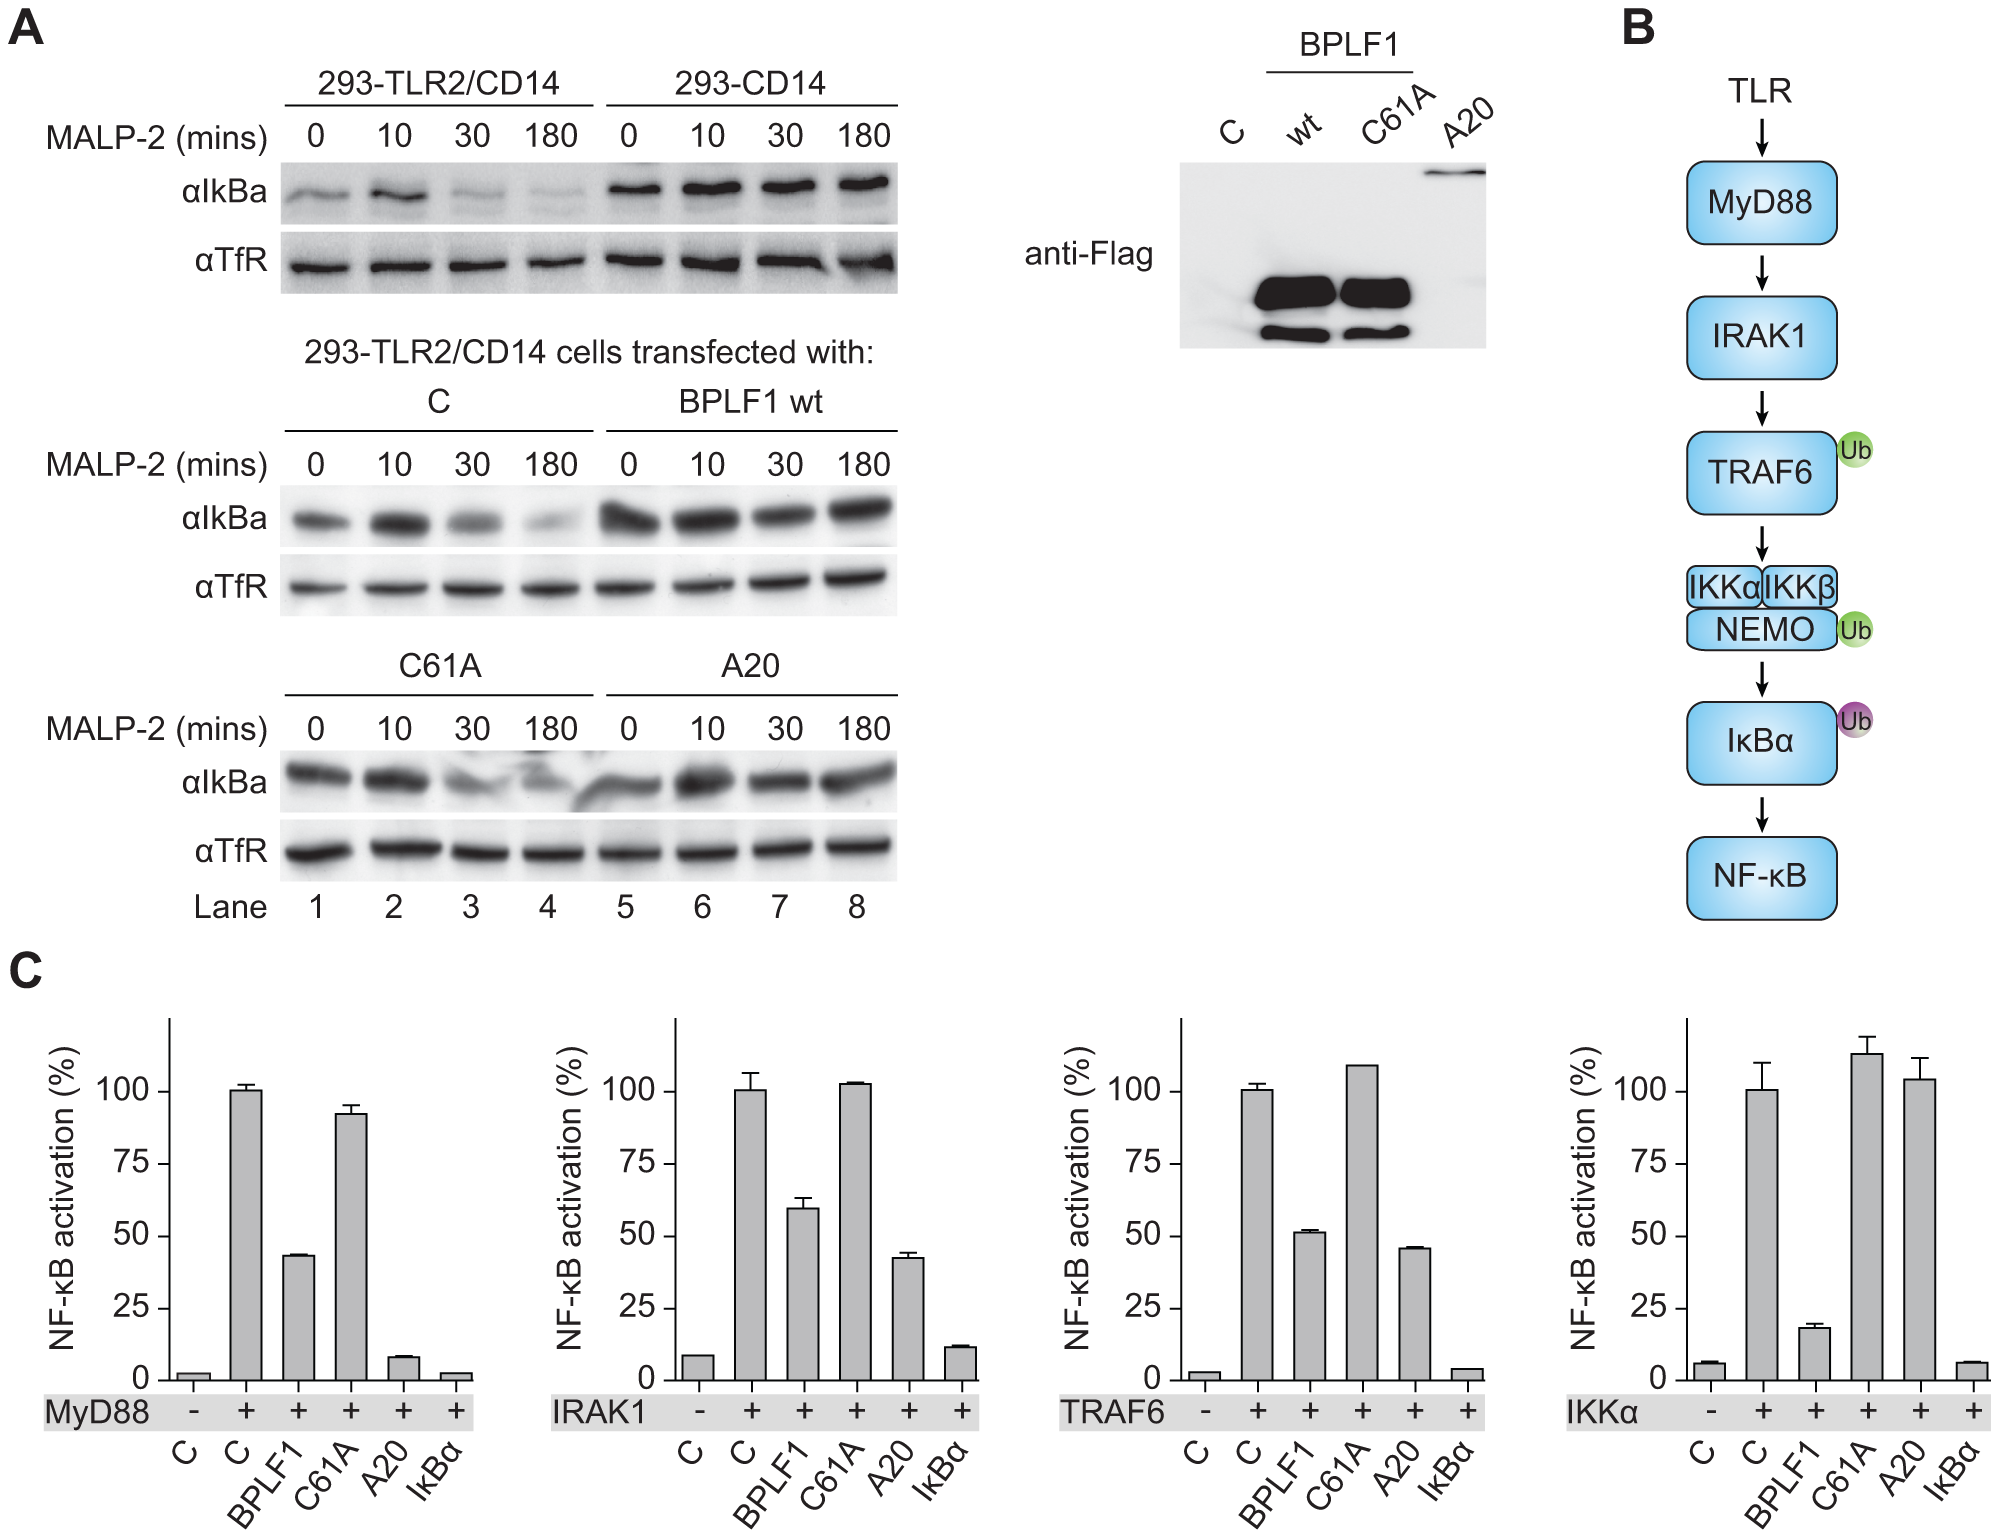 BPLF1 interferes with TLR signal transduction at multiple levels.